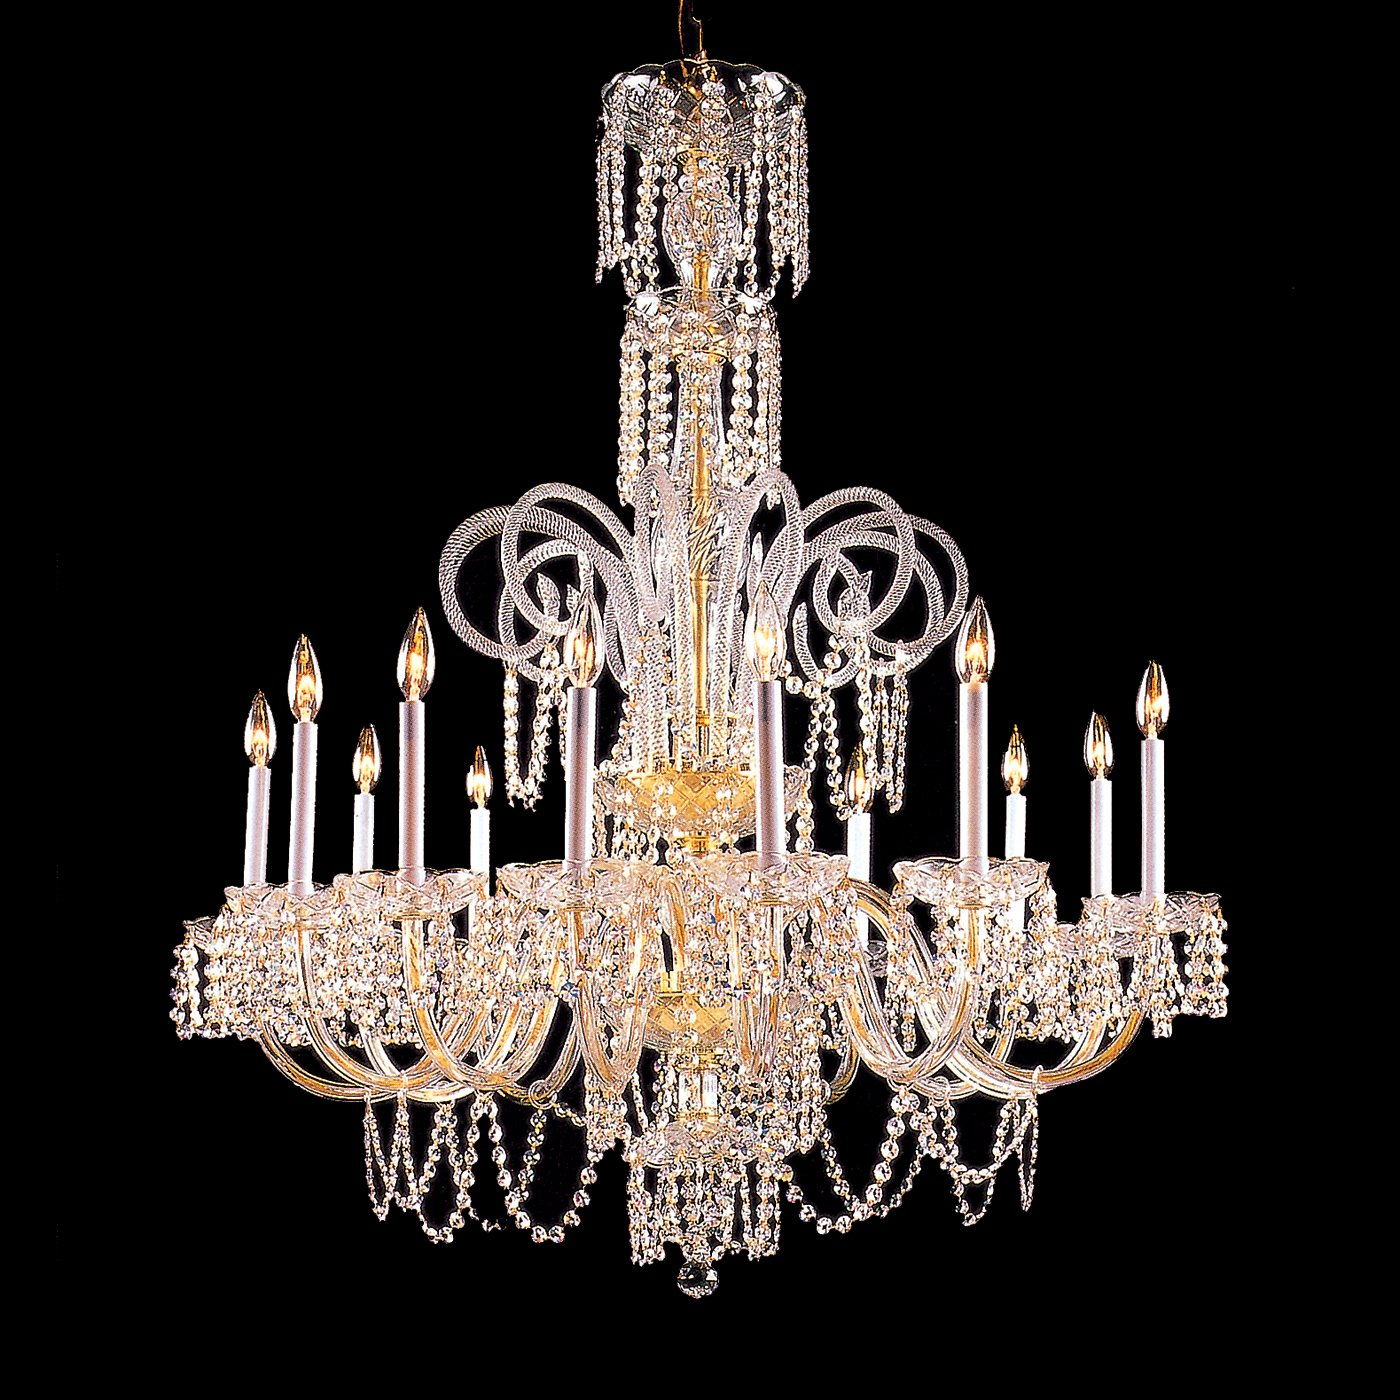 Home Decor Diary: Crystal Chandeliers for Traditional Dining Rooms